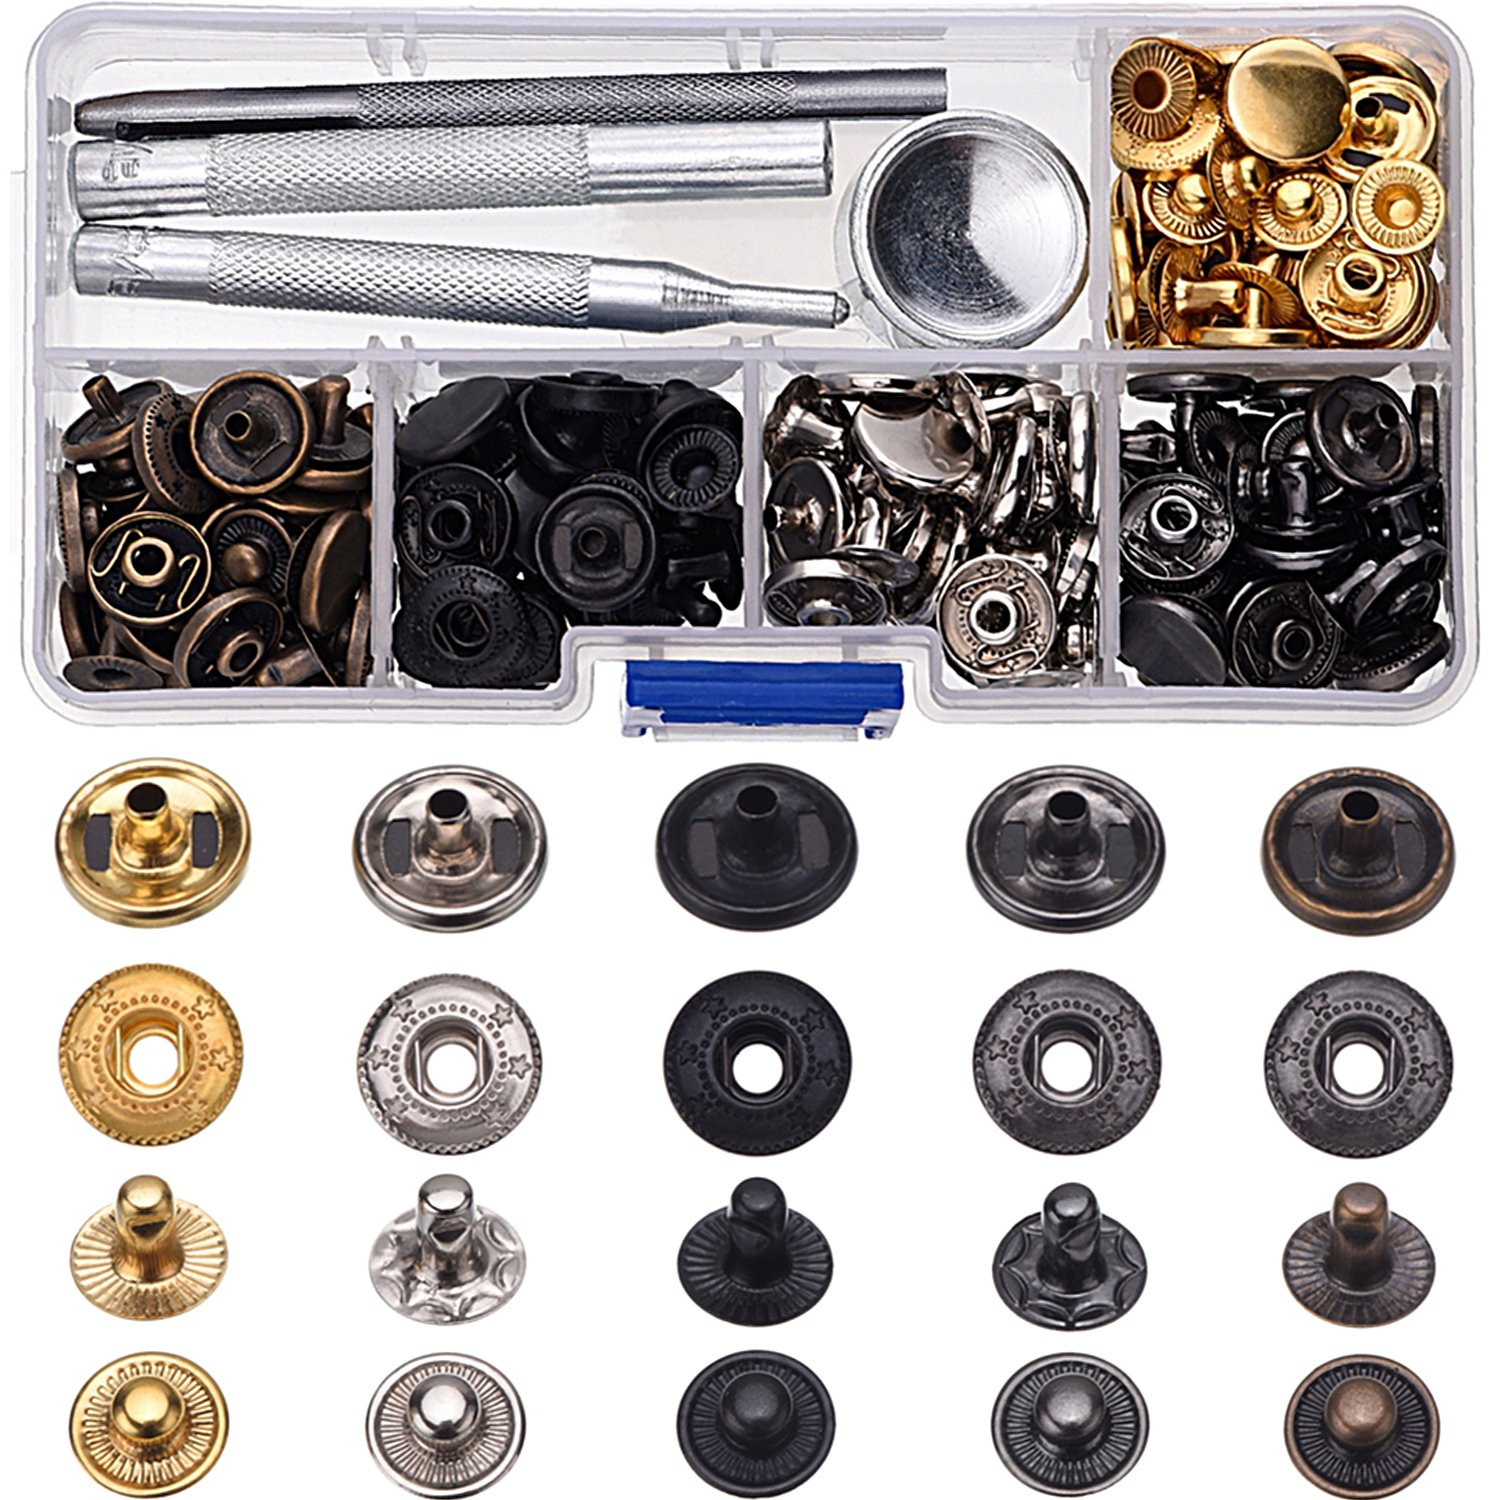 60 Set Copper Snap Fasteners Press Studs Poppers No Sewing Leather Clothing Button with 4 Pieces Install Tool (12.5 mm) Shappy